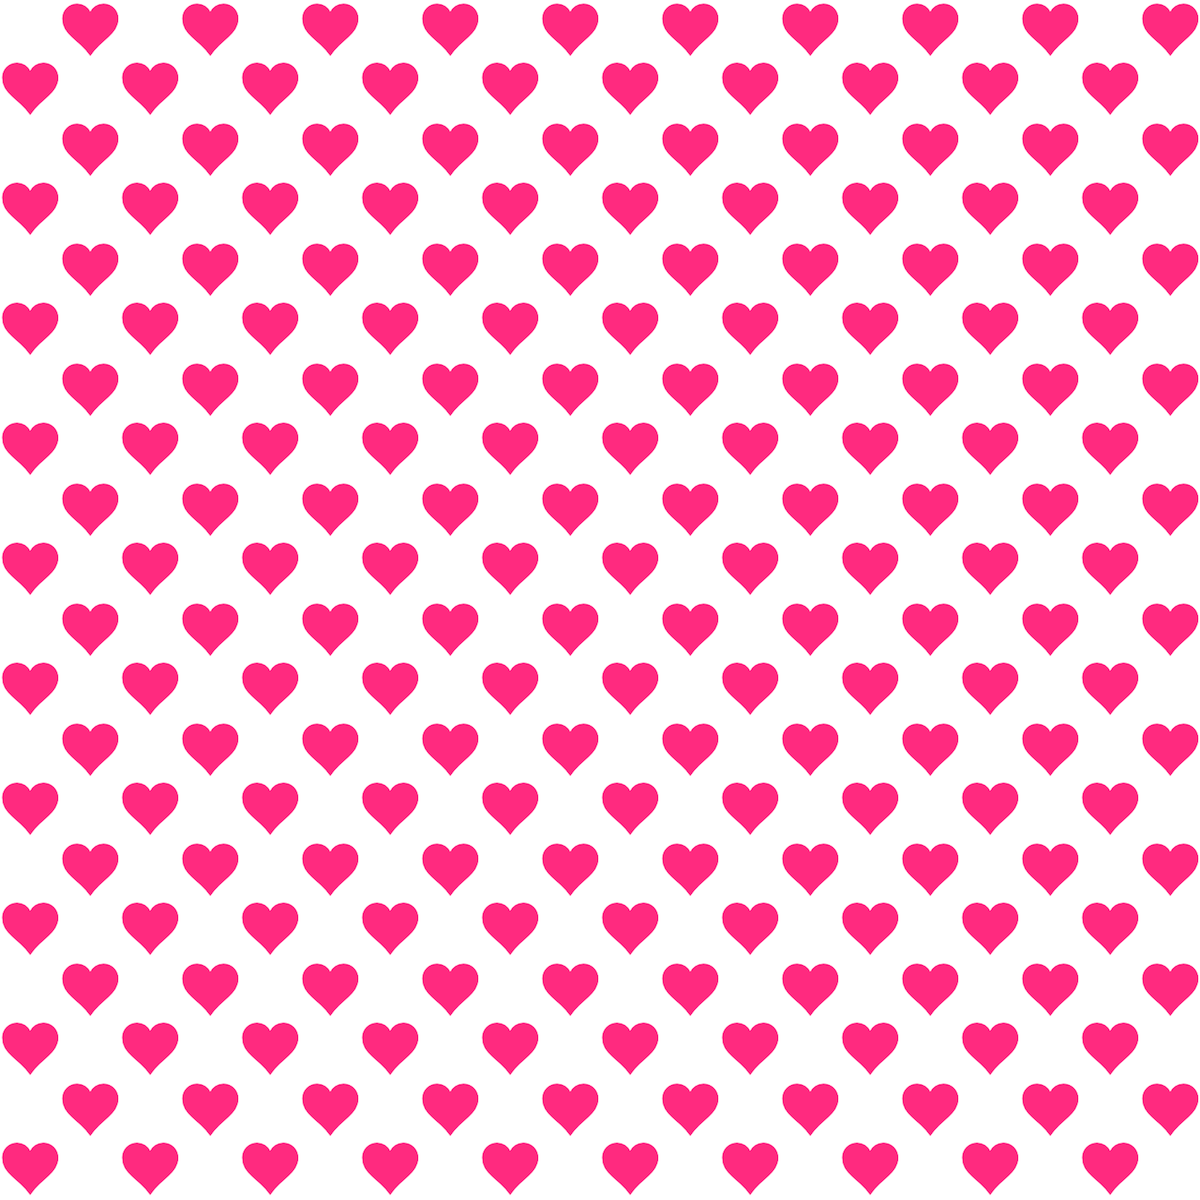 Displaying 18> Images For - Valentines Day Heart Border...